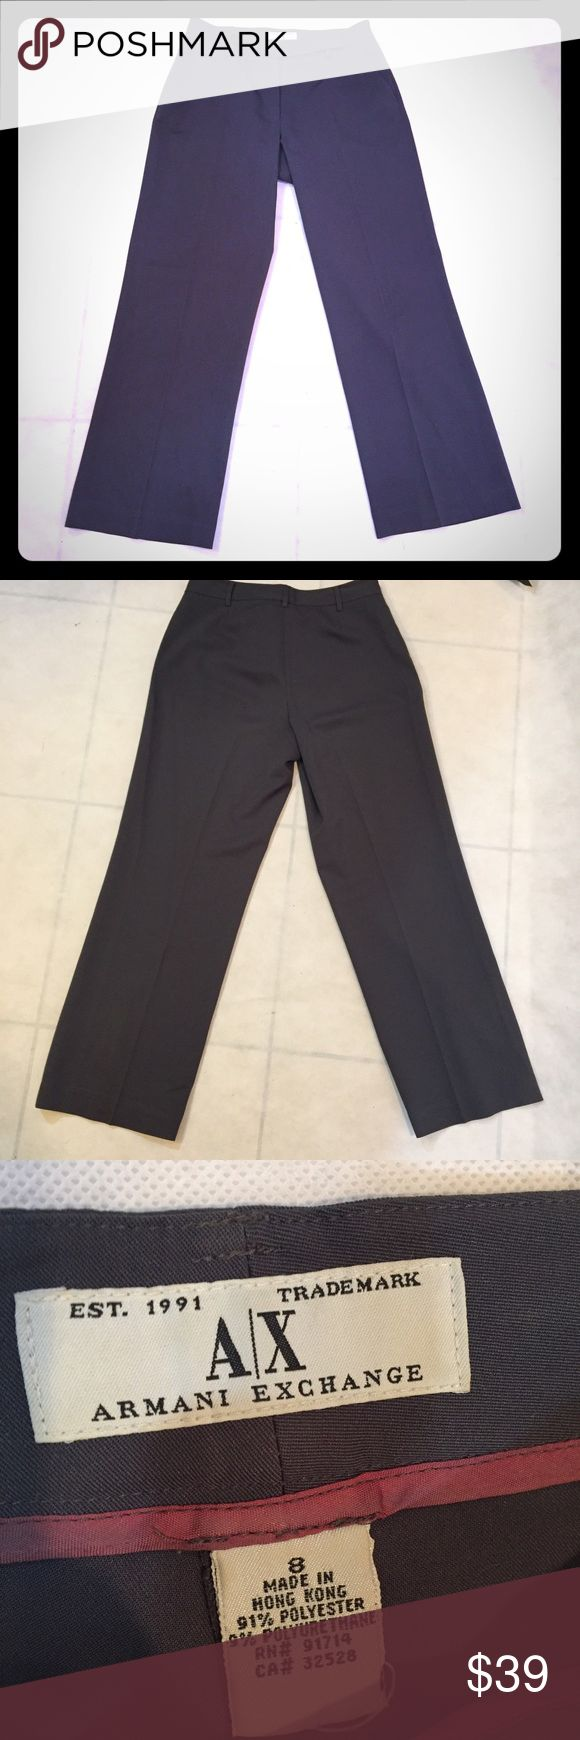 ARMANI EXCHANGE GREY WIDE LEG TROUSERS - sz. 8 These Armani Exchange Gray Trousers are gently loved with no signs of wear.  Wide-leg silhouette 91% Polyester, Lining: 94% Polyester,  Hand Wash Imported A/X Armani Exchange Pants Wide Leg